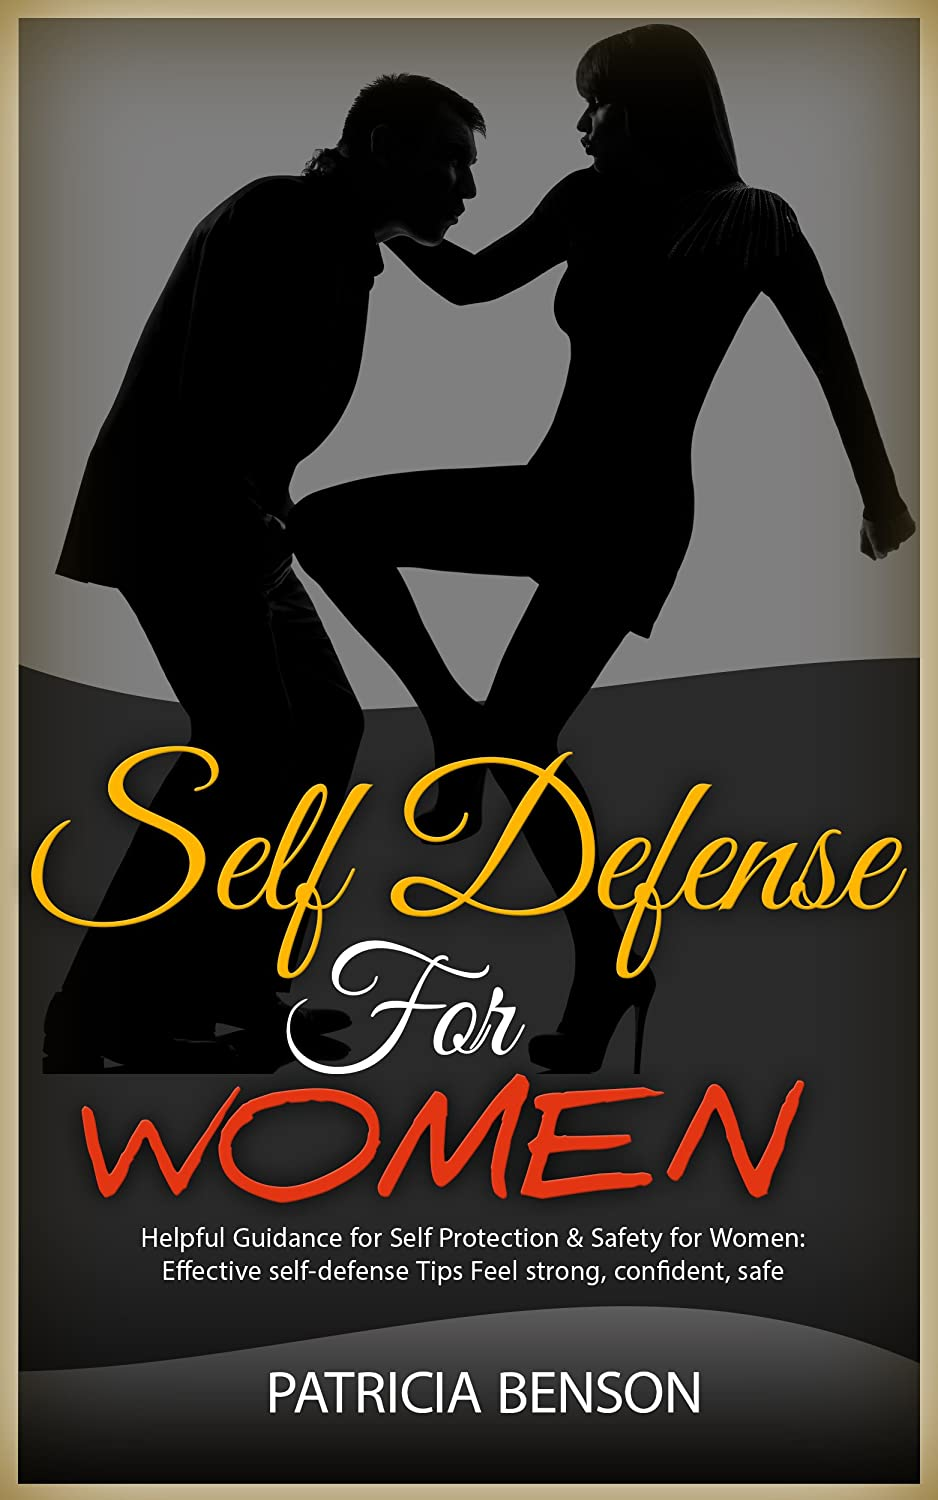 Self Defense for Women - Helpful Guidance for Self Protection & Safety for Women by Patricia Benson